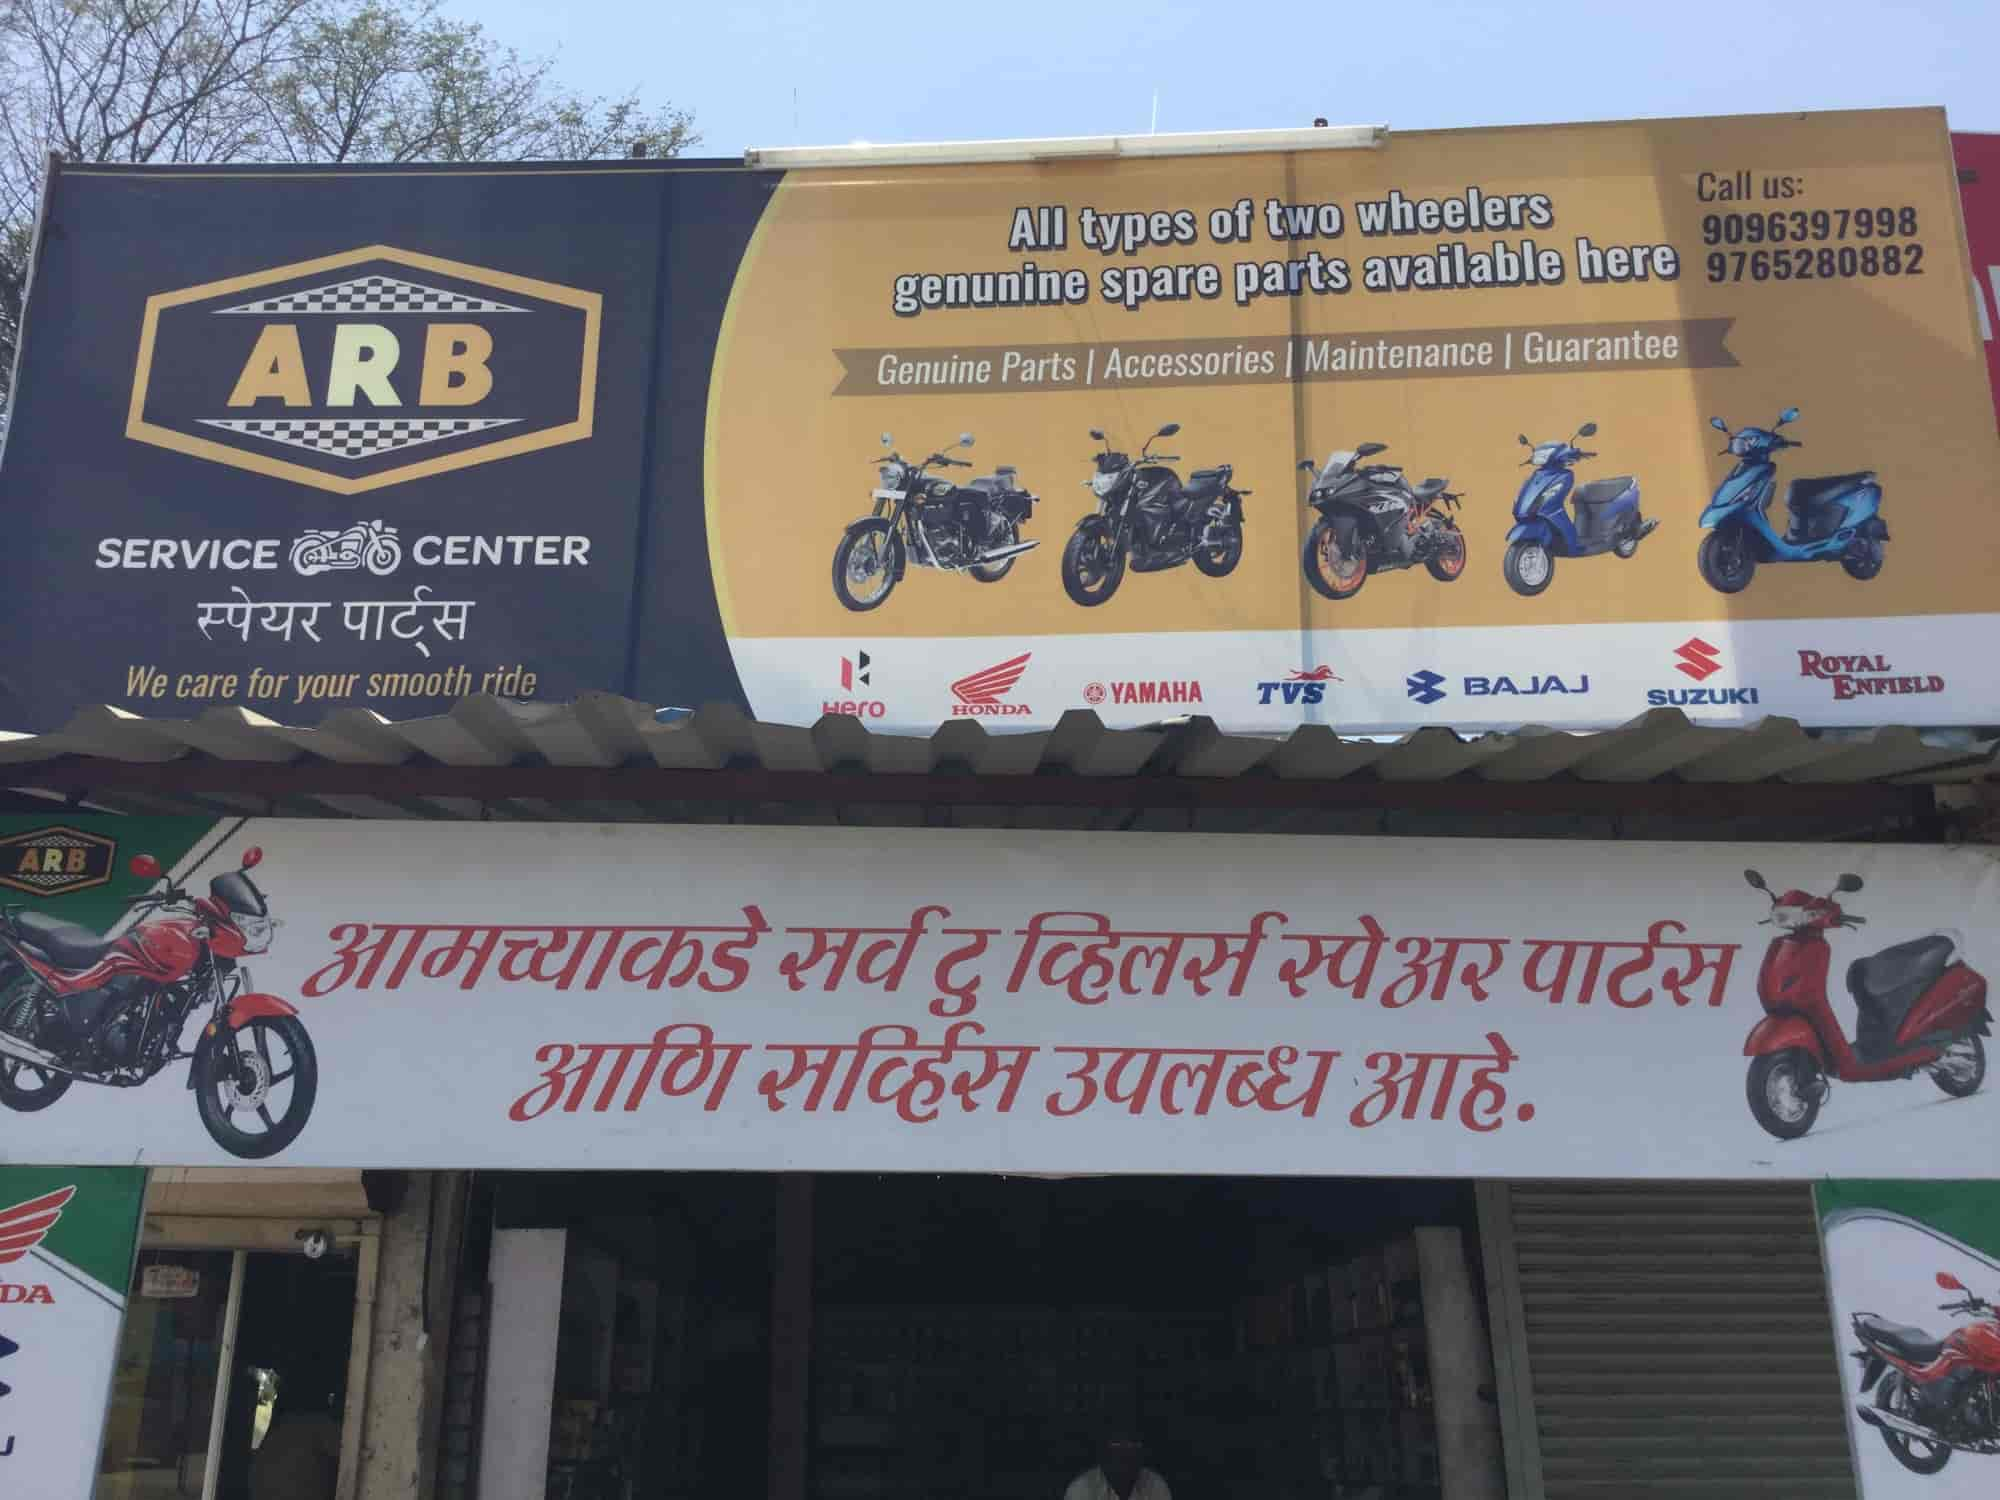 ARB Service Center, HINJAWADI PHASE 3 - Motorcycle Repair